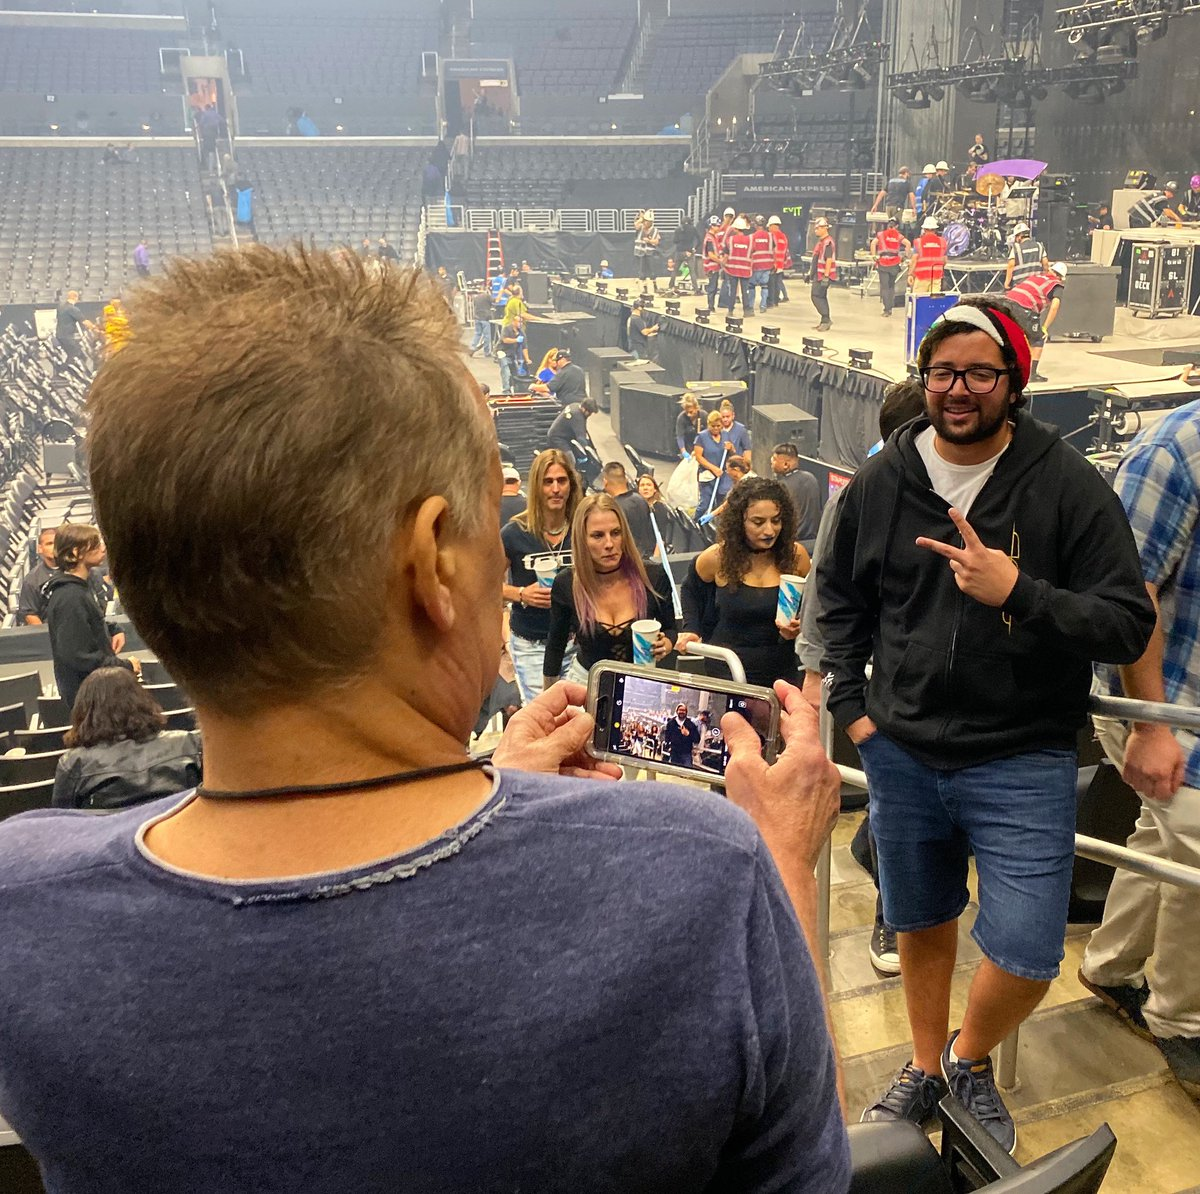 Wolfy Van Halenson On Twitter A Guy Asked My Dad If He Could Take A Picture Of Him With The Stage Behind Him Having No Idea Who He Just Asked And